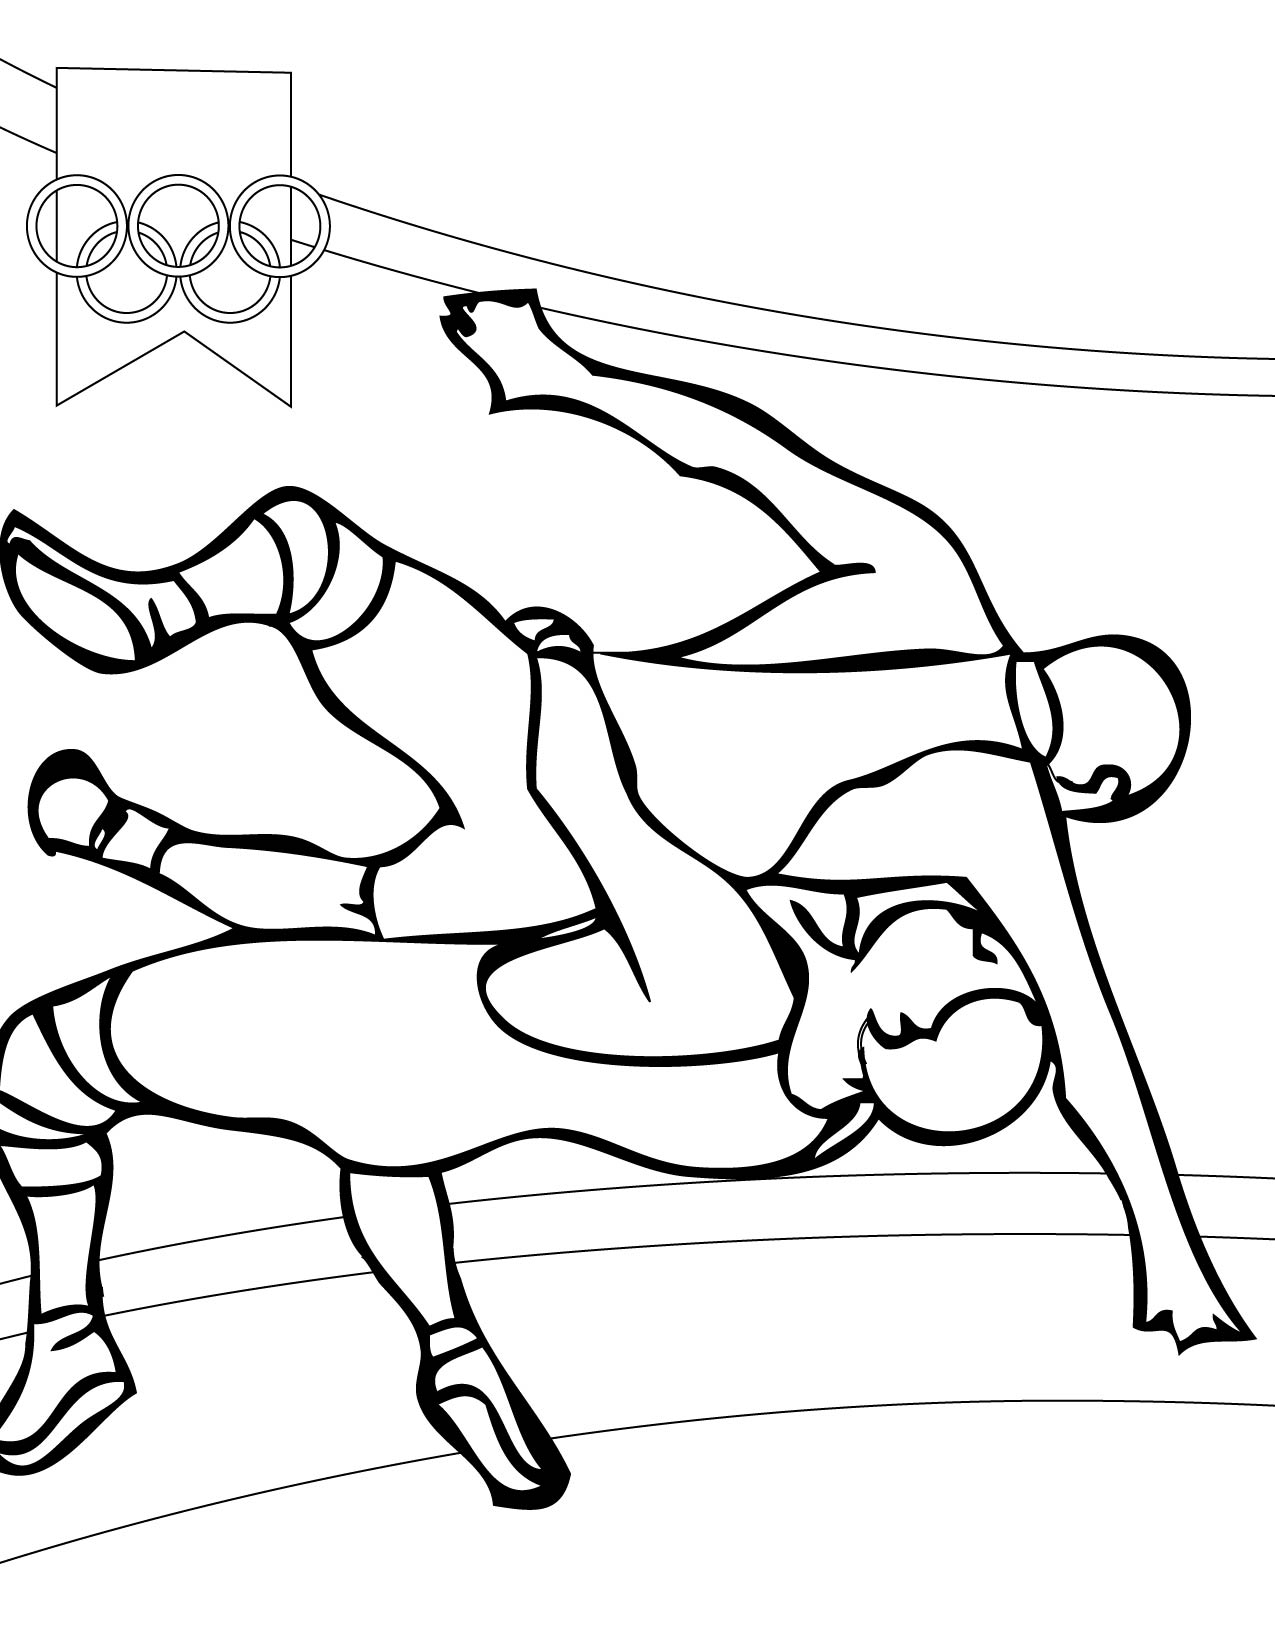 Wrestling Coloring Pages For Kids